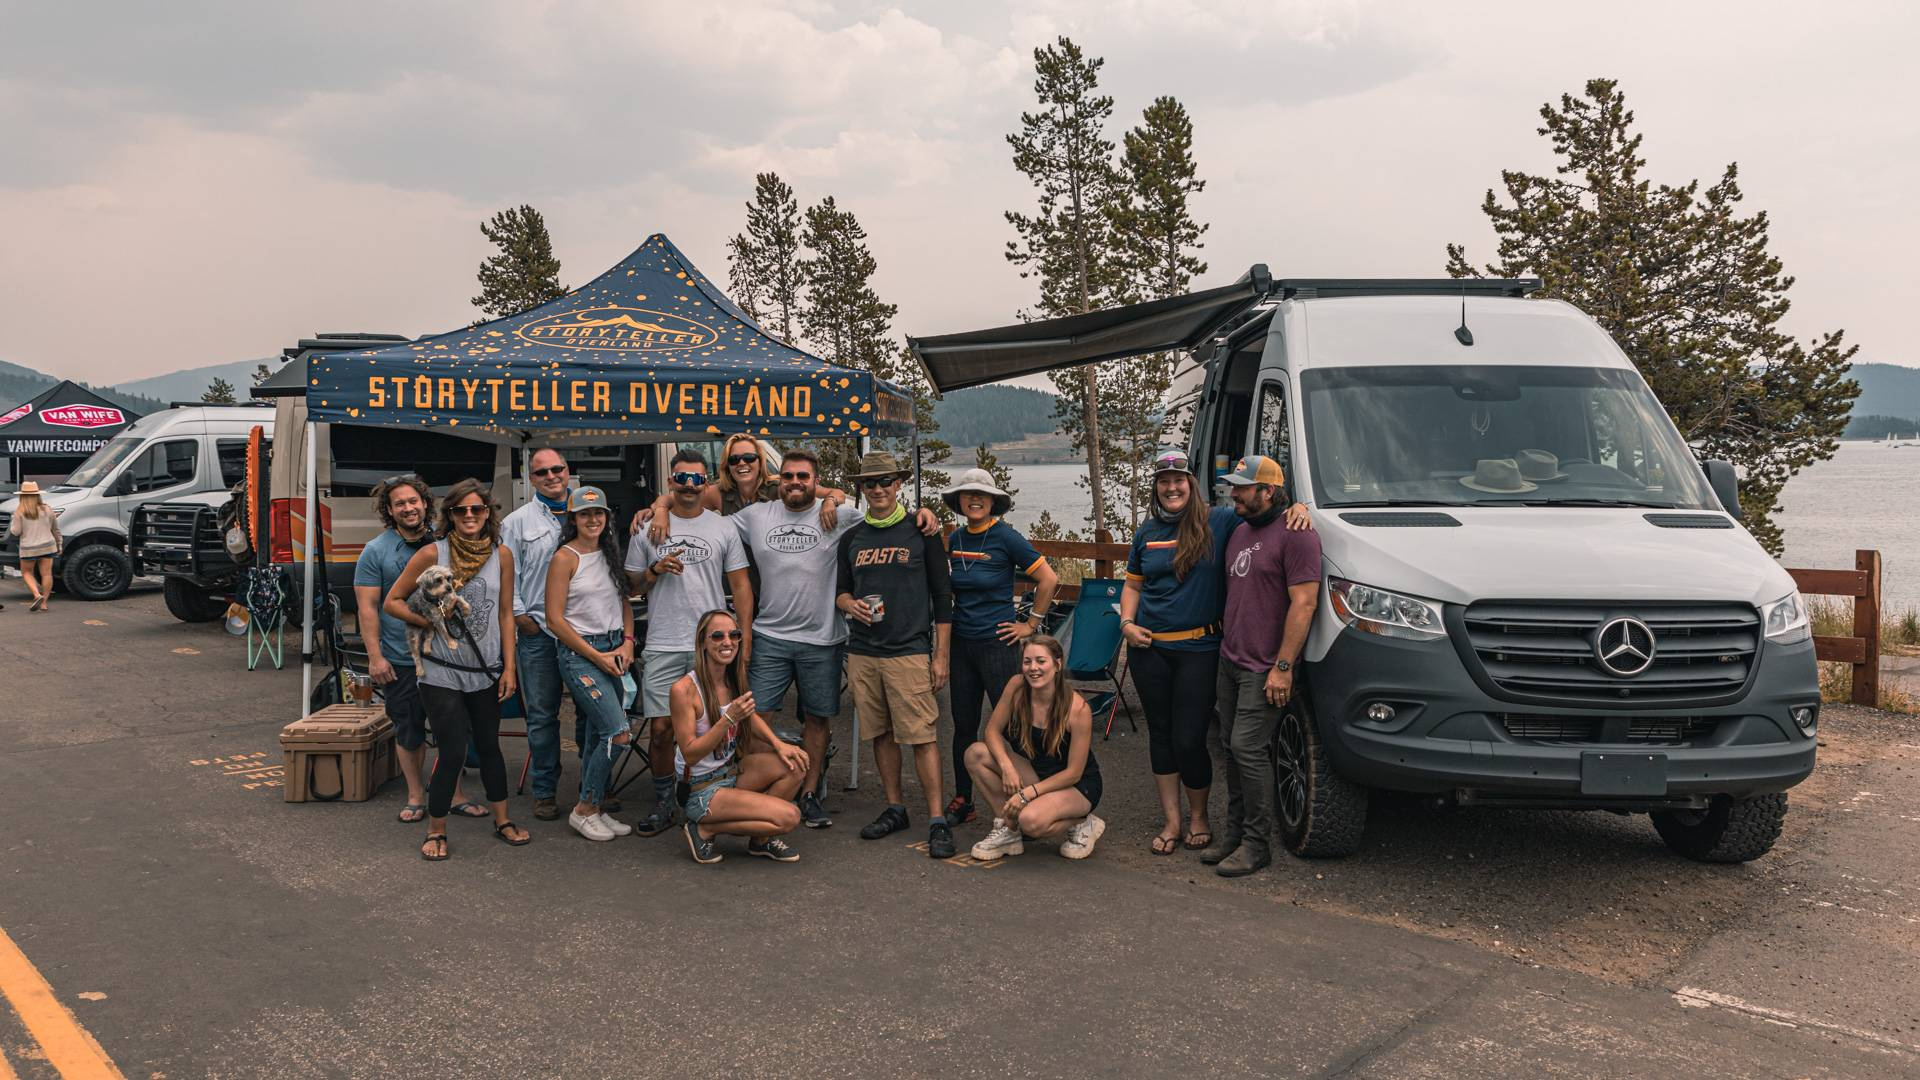 An Adventure Van Expo in Smokey Denver